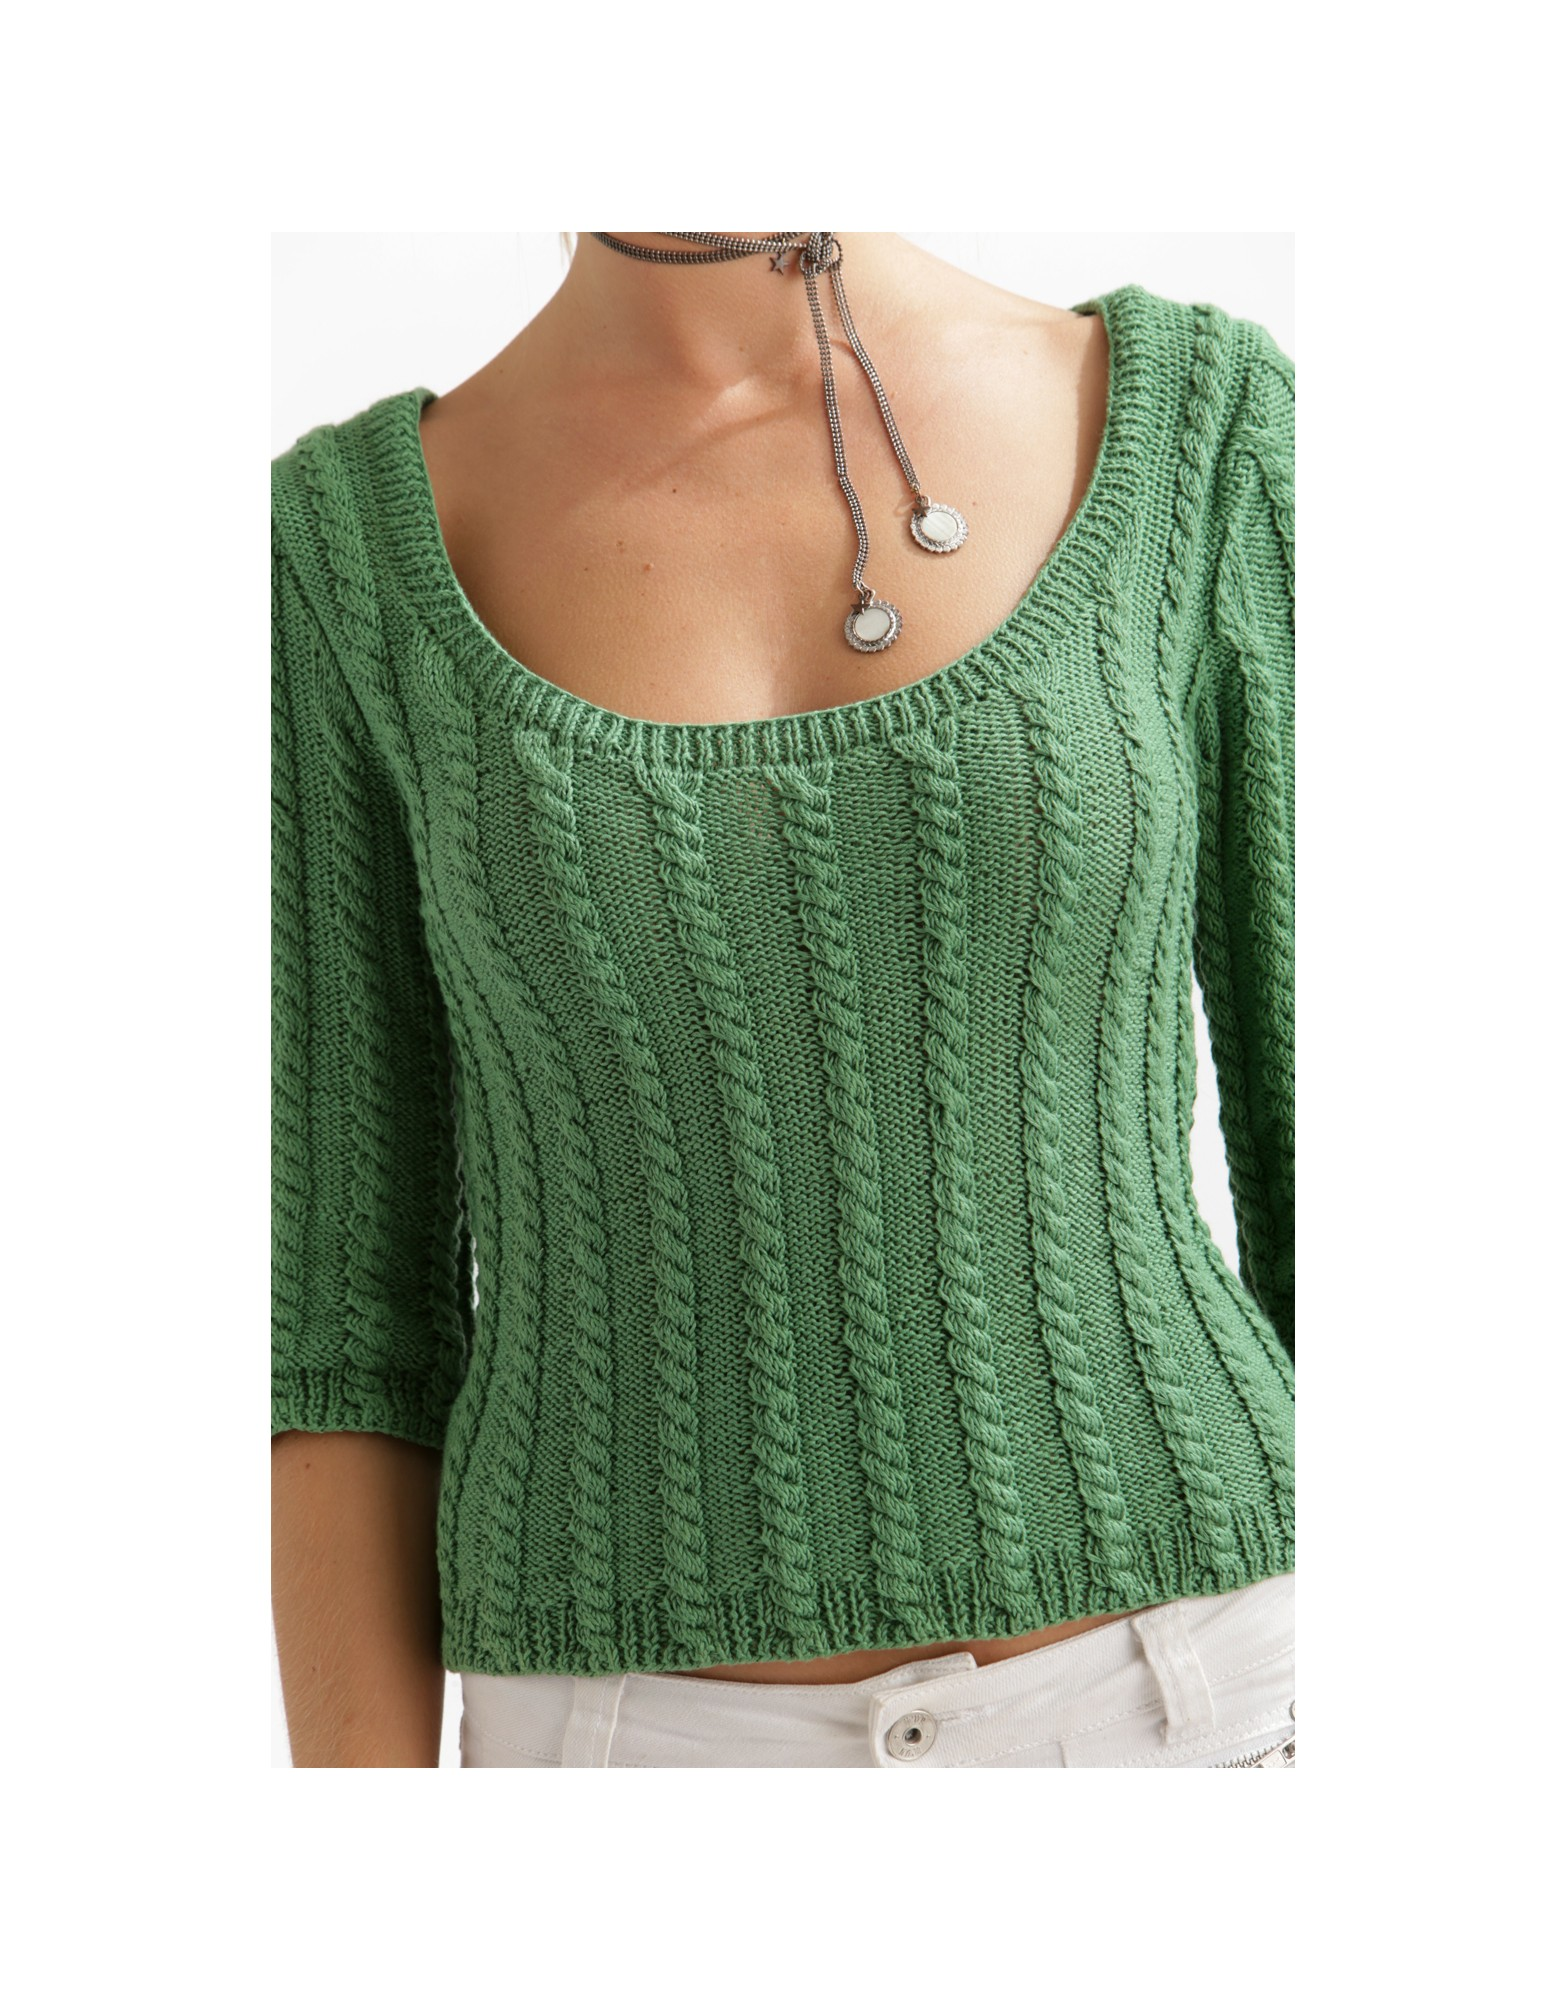 Ambre Cabled Sweater Free Knitting Pattern Download